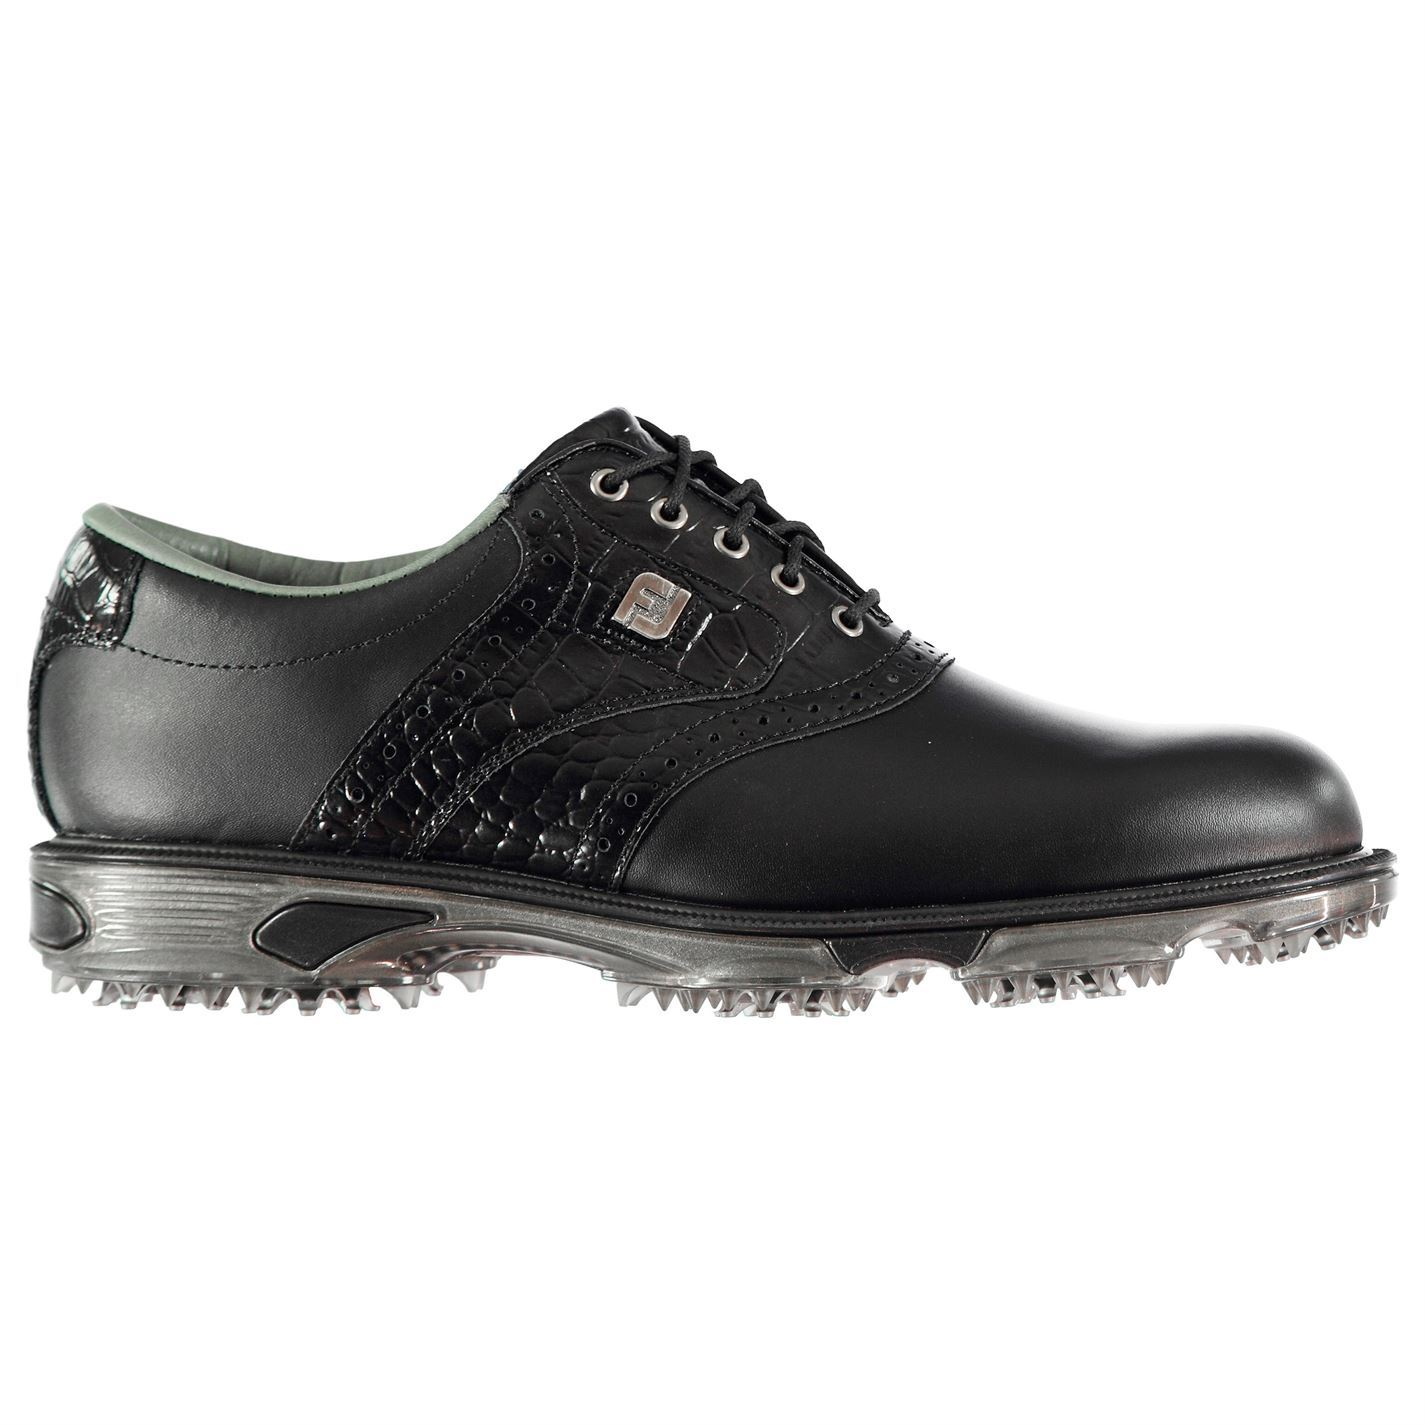 Footjoy-DryJoys-Tour-Golf-Shoes-Mens-Spikes-Footwear thumbnail 8